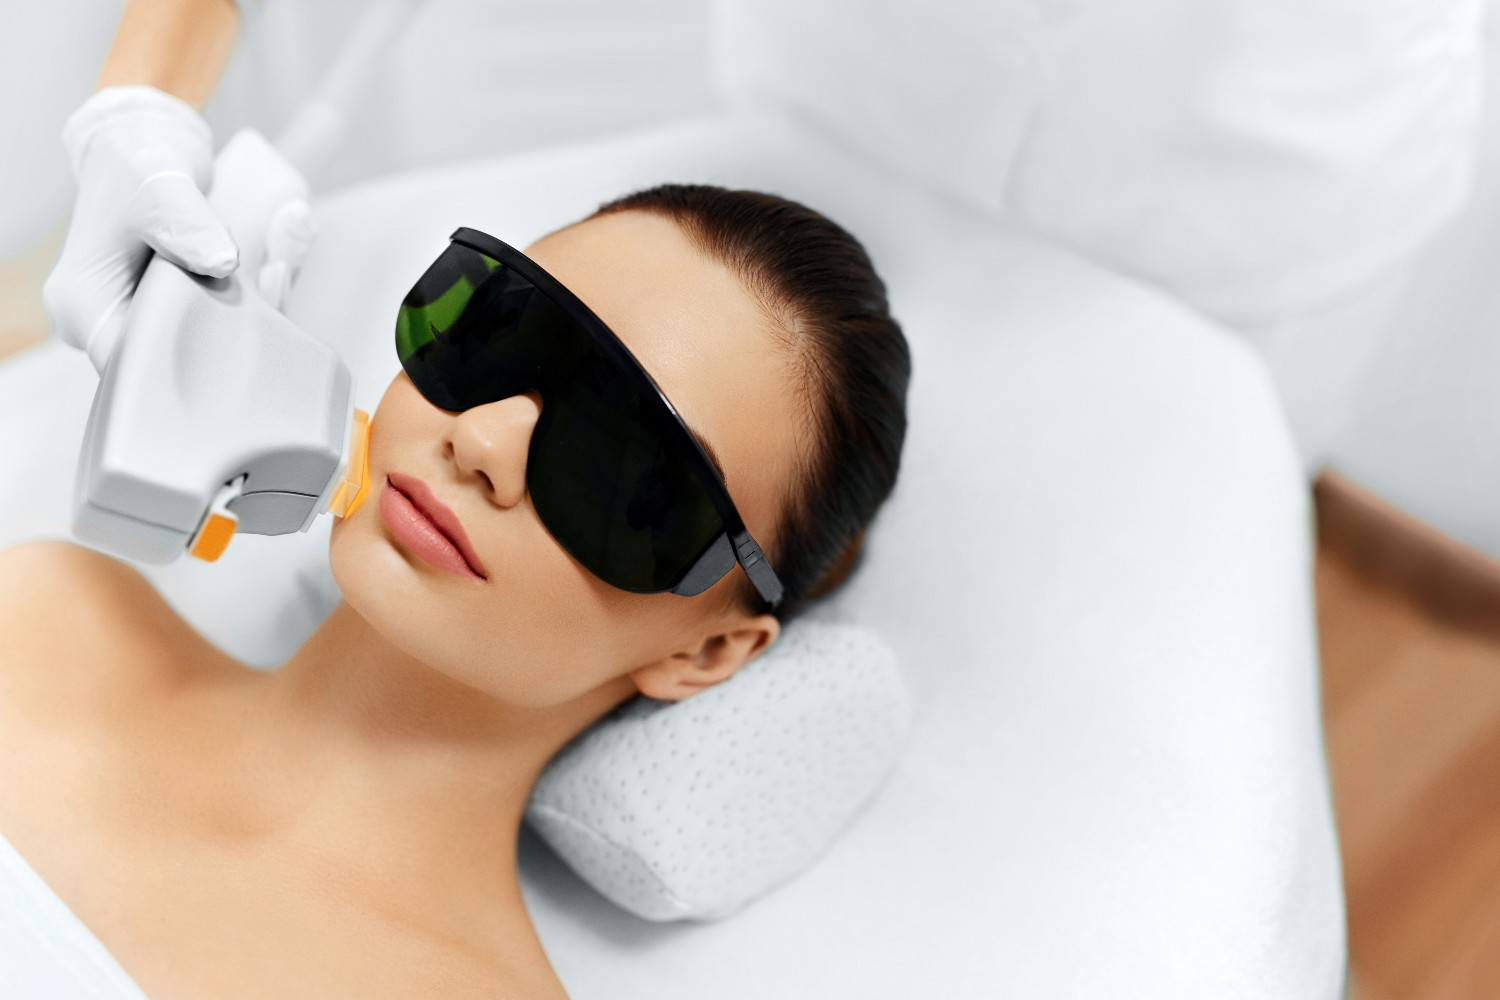 woman getting a laser treatment on her face